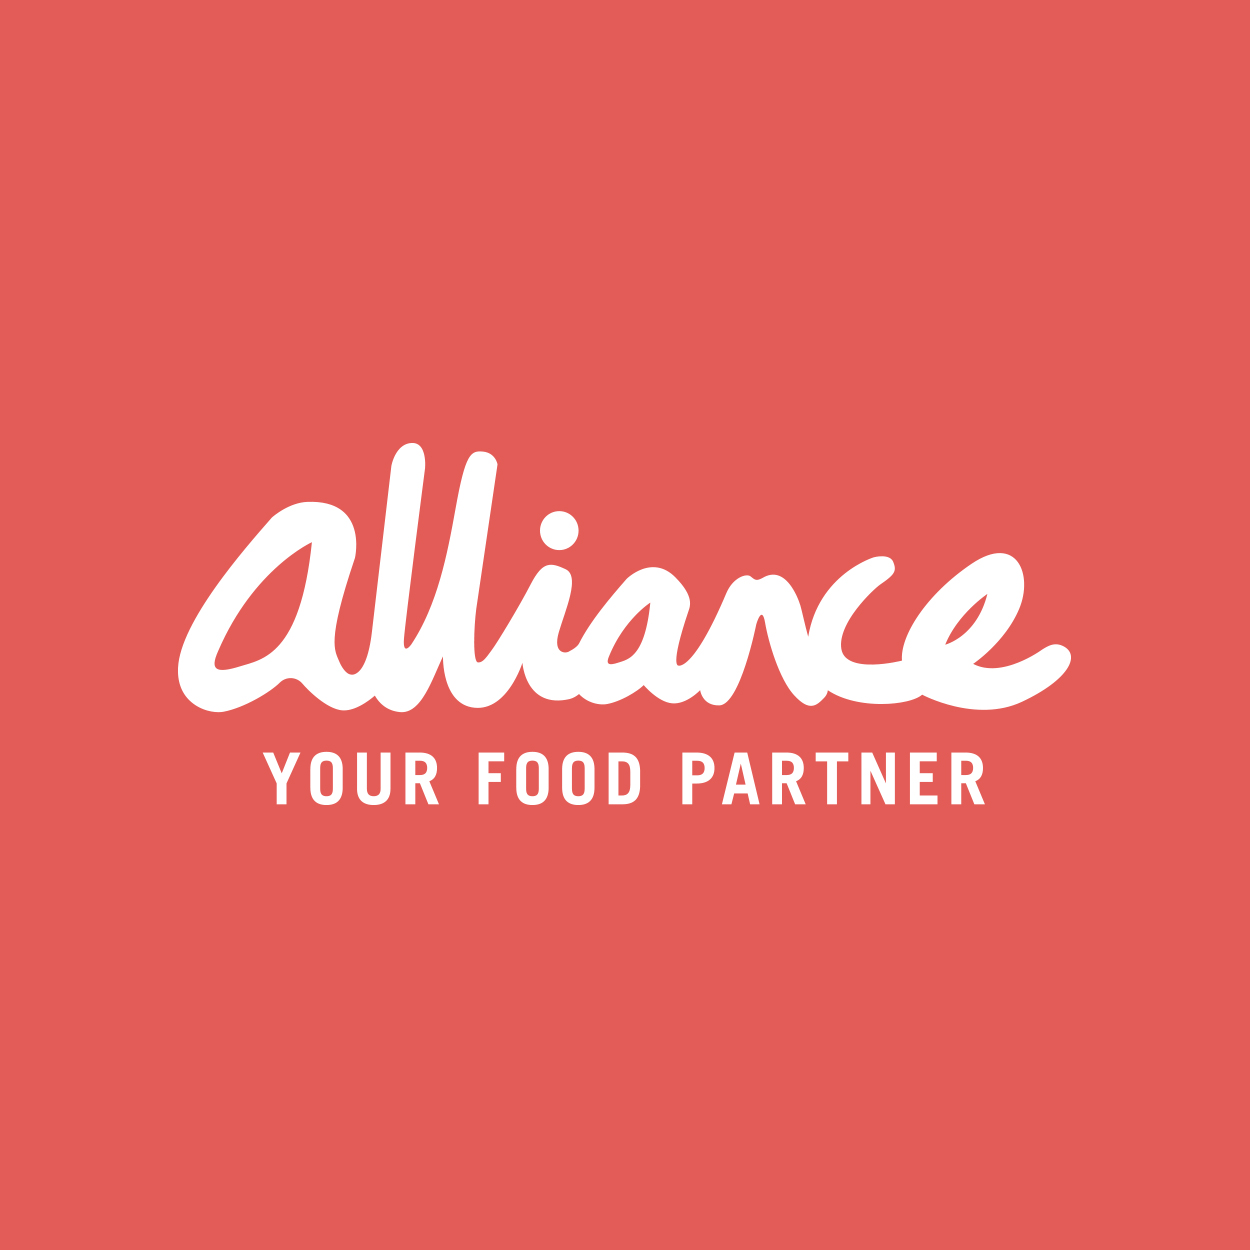 Alliance rebranded logo